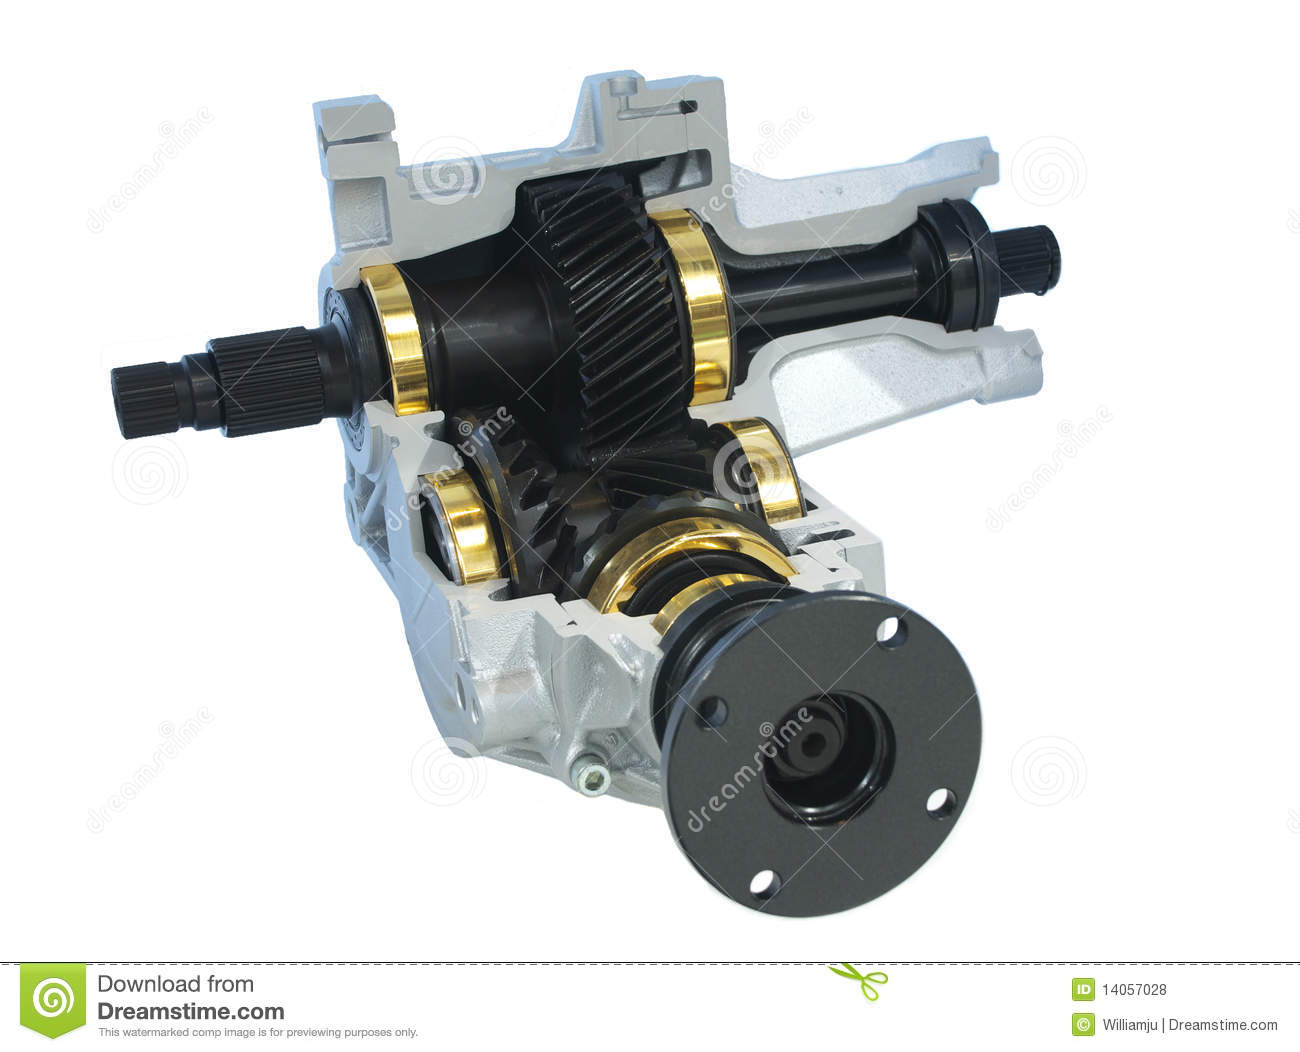 Parts Power Take Off : Car parts power take off unit stock photo image